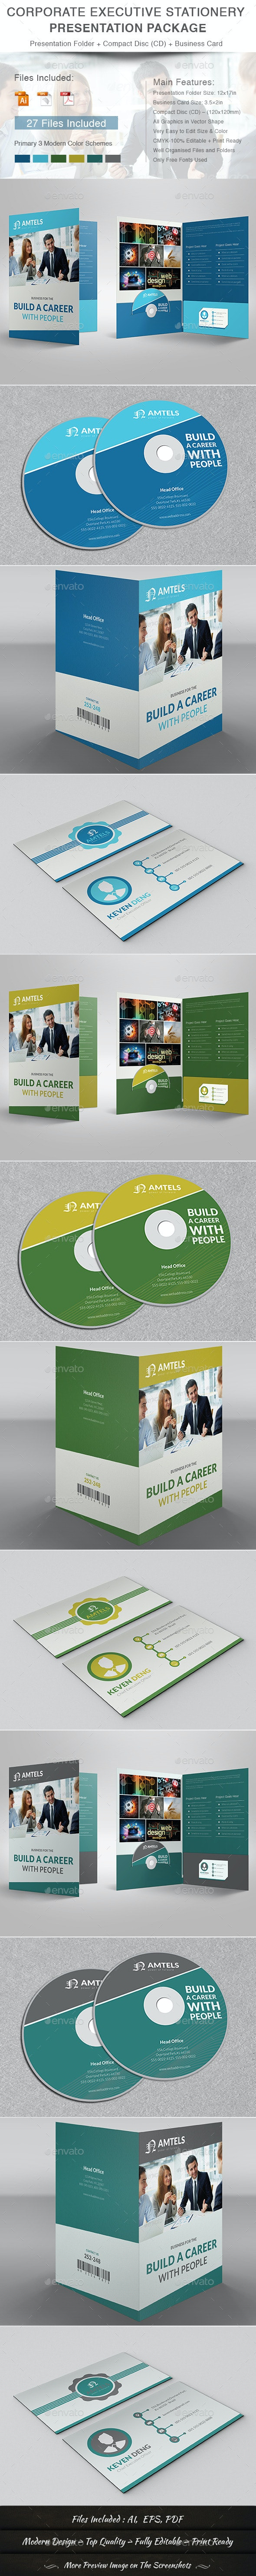 Corporate Executive Stationery Presentation Packag - Stationery Print Templates